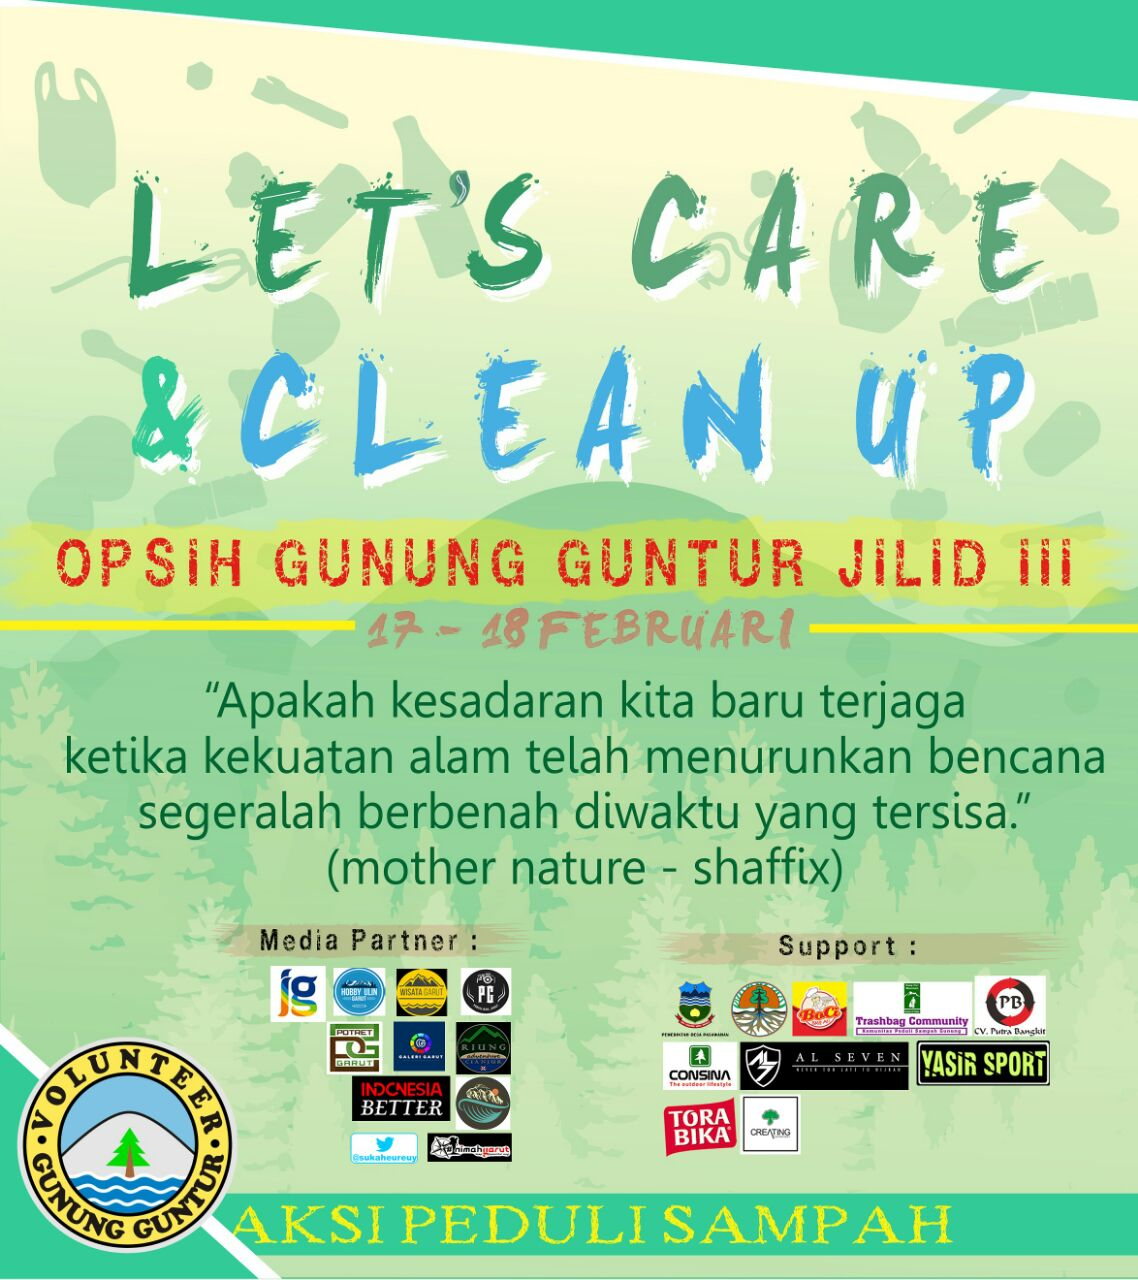 Opsih Gunung Guntur Jilid III: Let's Care and Clean Up